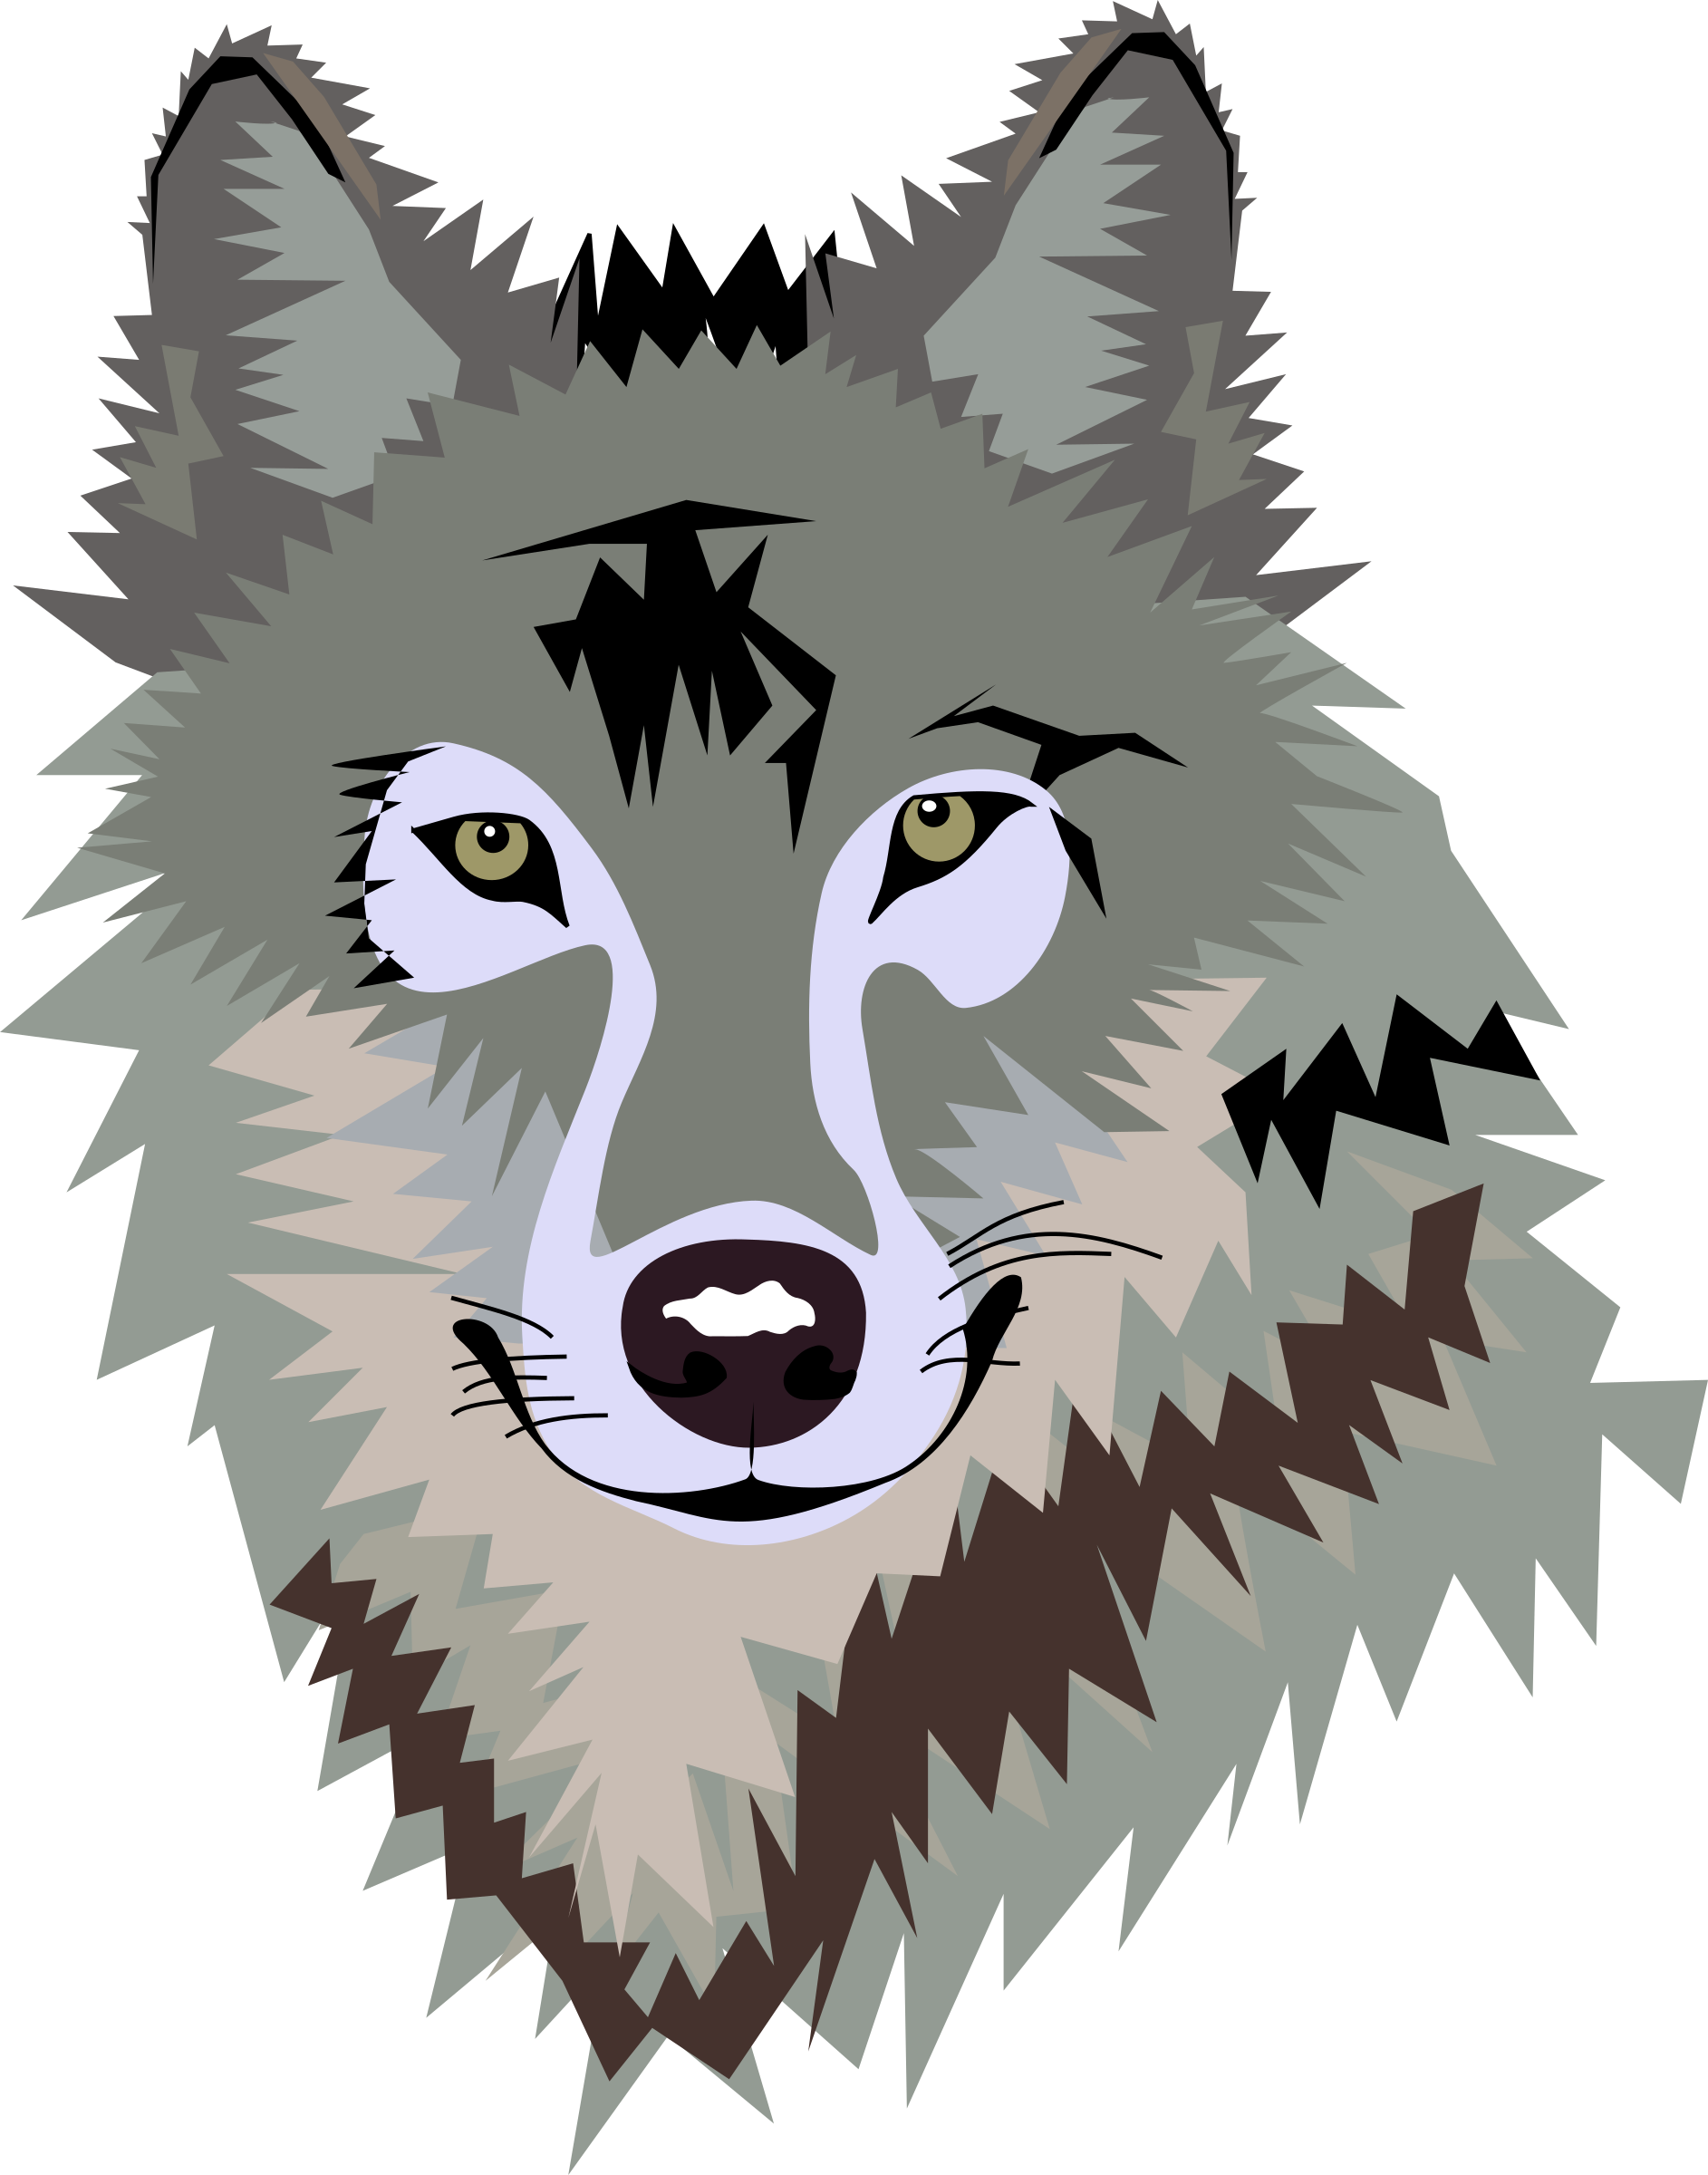 Wolves clipart nature, Wolves nature Transparent FREE for.